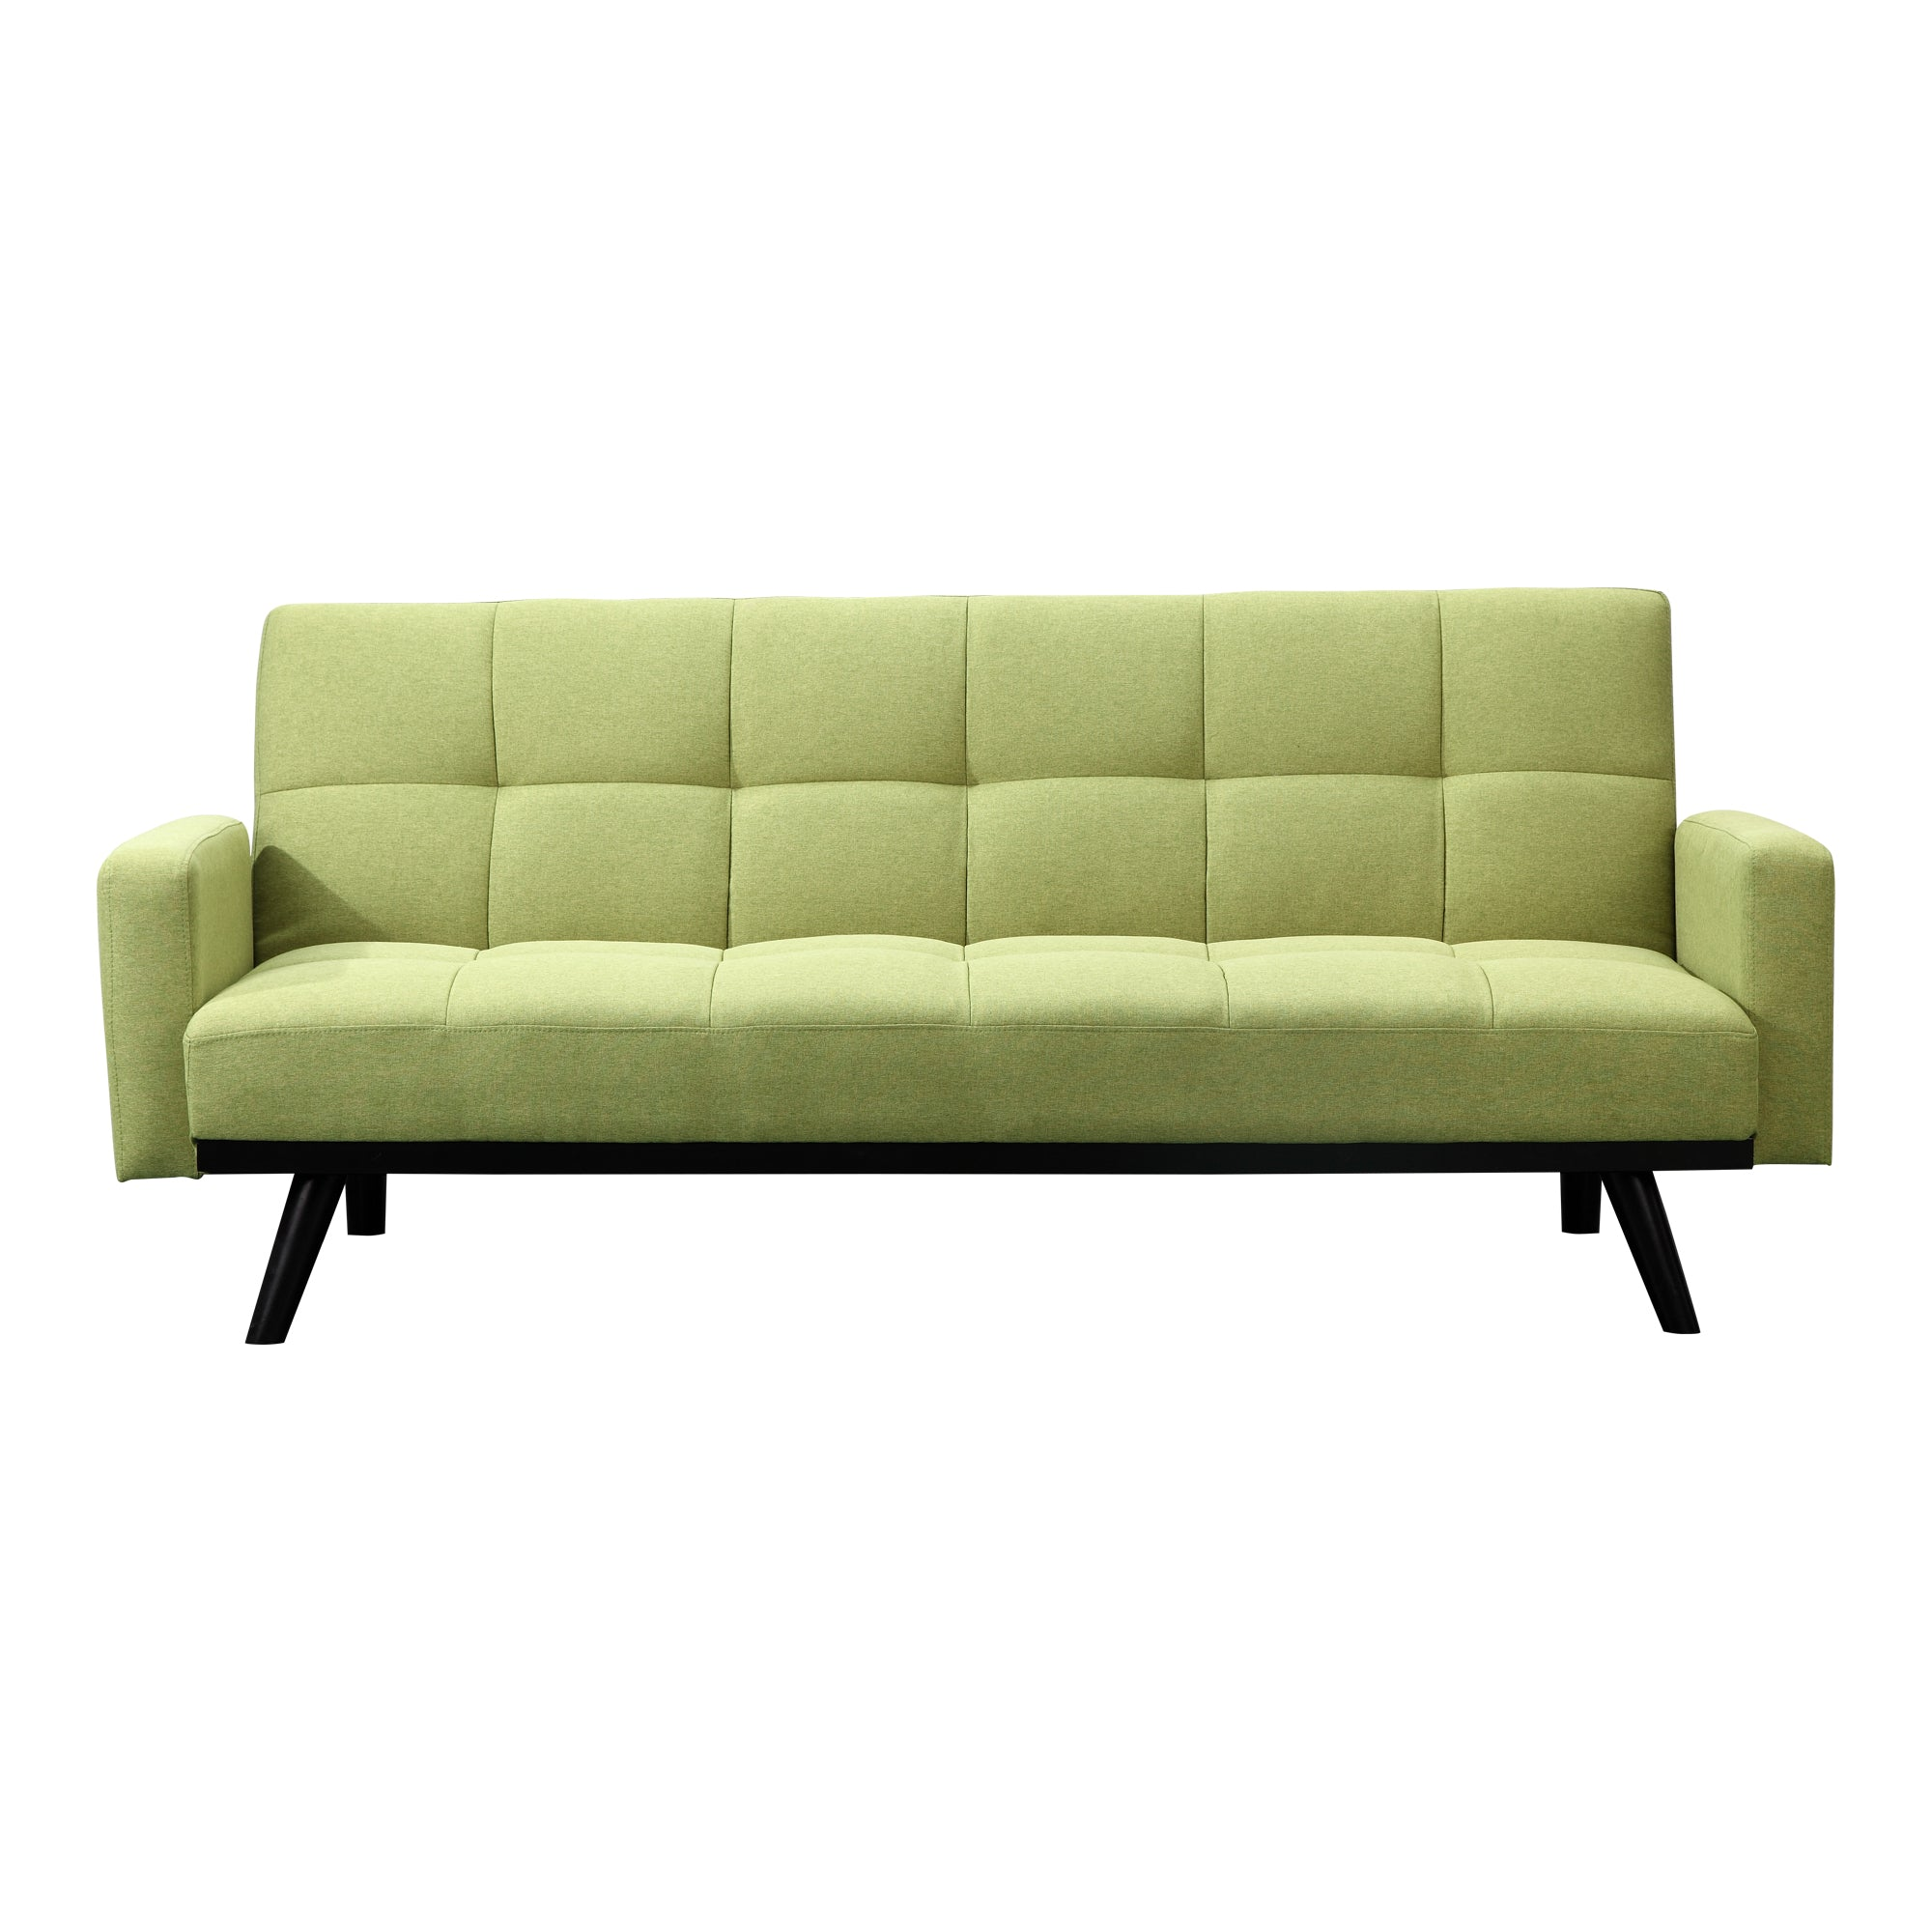 Candidate sofa bed, green - Tops-Dress